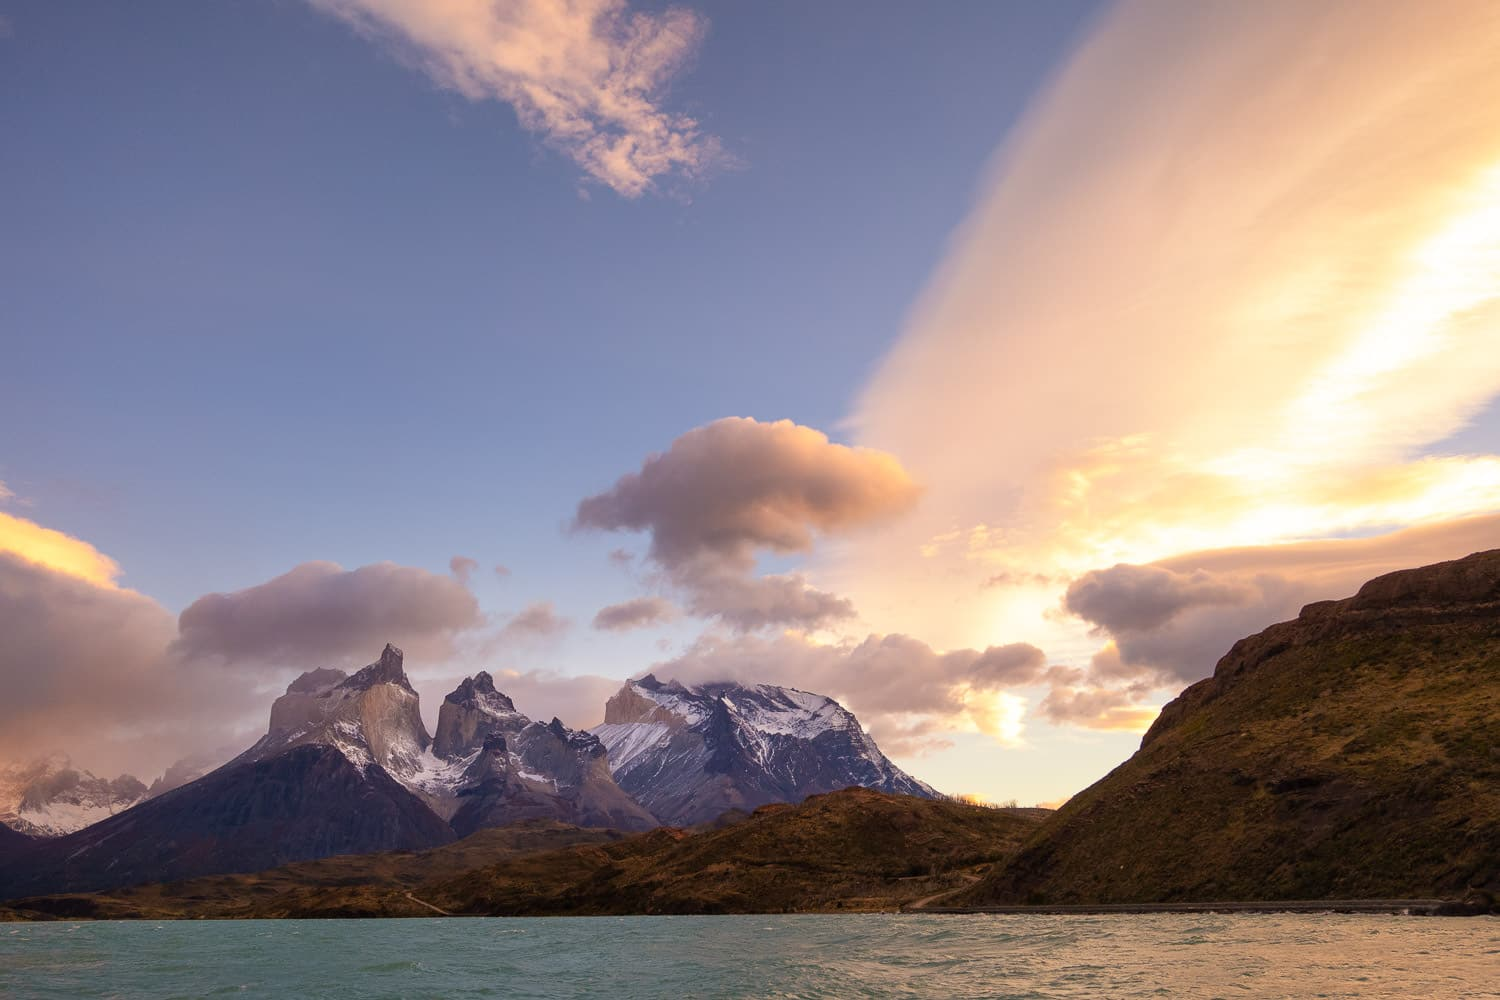 Sunset over Torres del Paine with Sony RX0 II